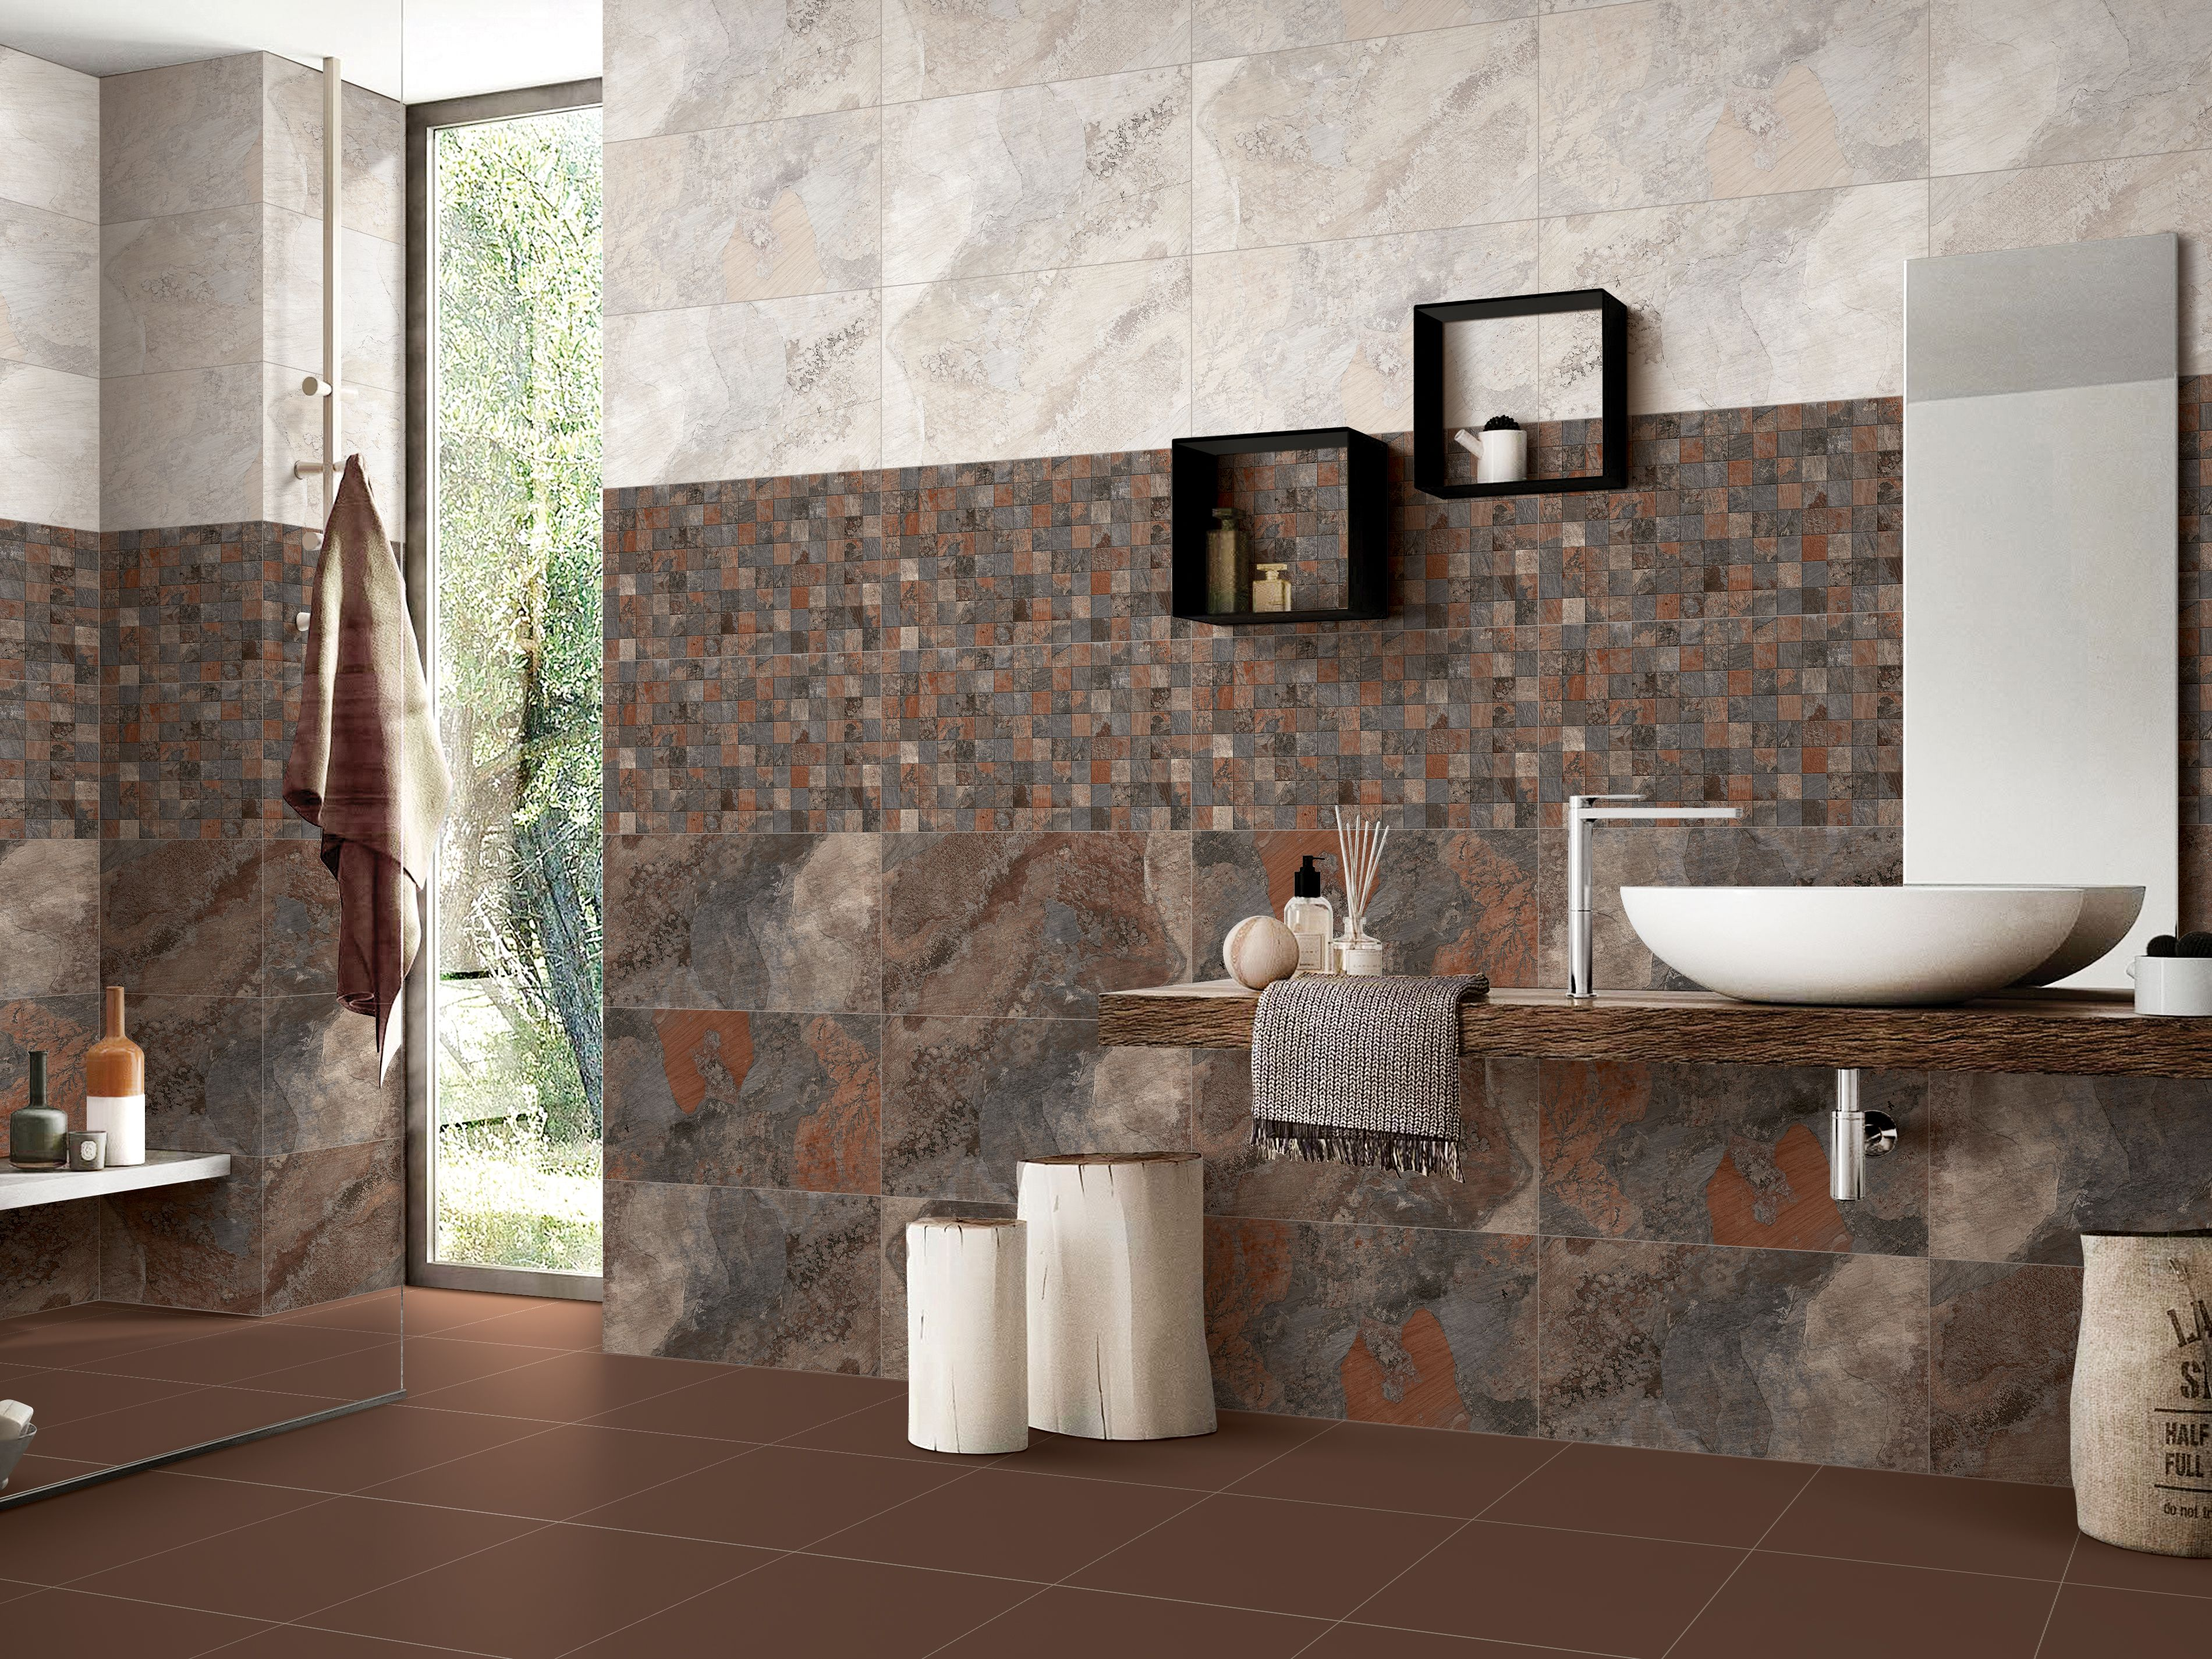 Boonthavorn Look Both Classic And Contemporary At The Same Time With Rustic Floor Wall Tiles Rustic Flooring Tile Bathroom Wall Tiles